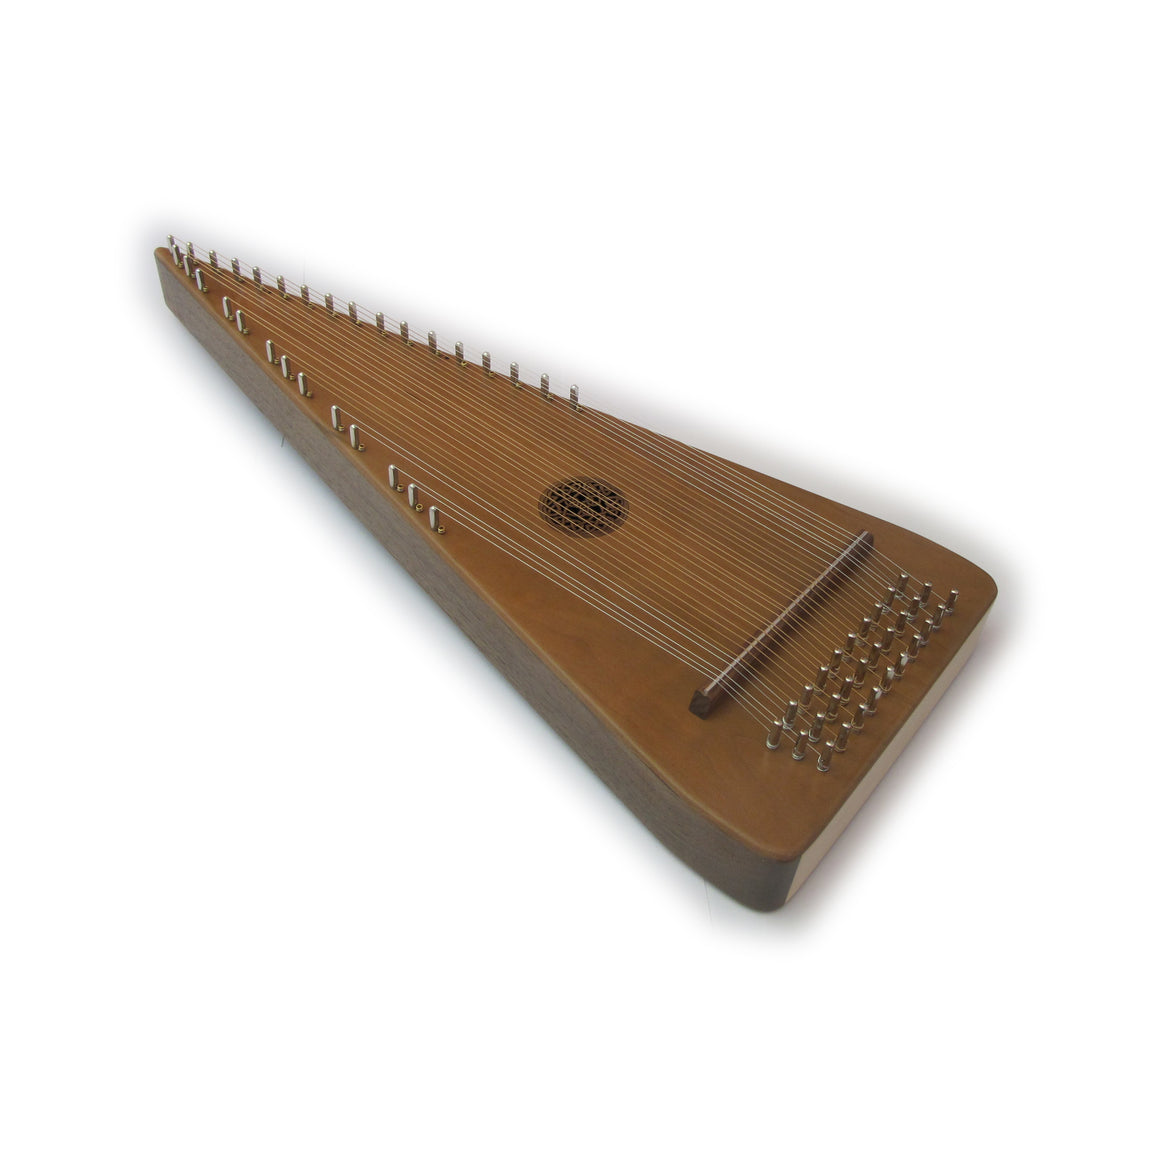 Bowed psaltery package contents include carrying case, bow, rosin, tuning wrench and more